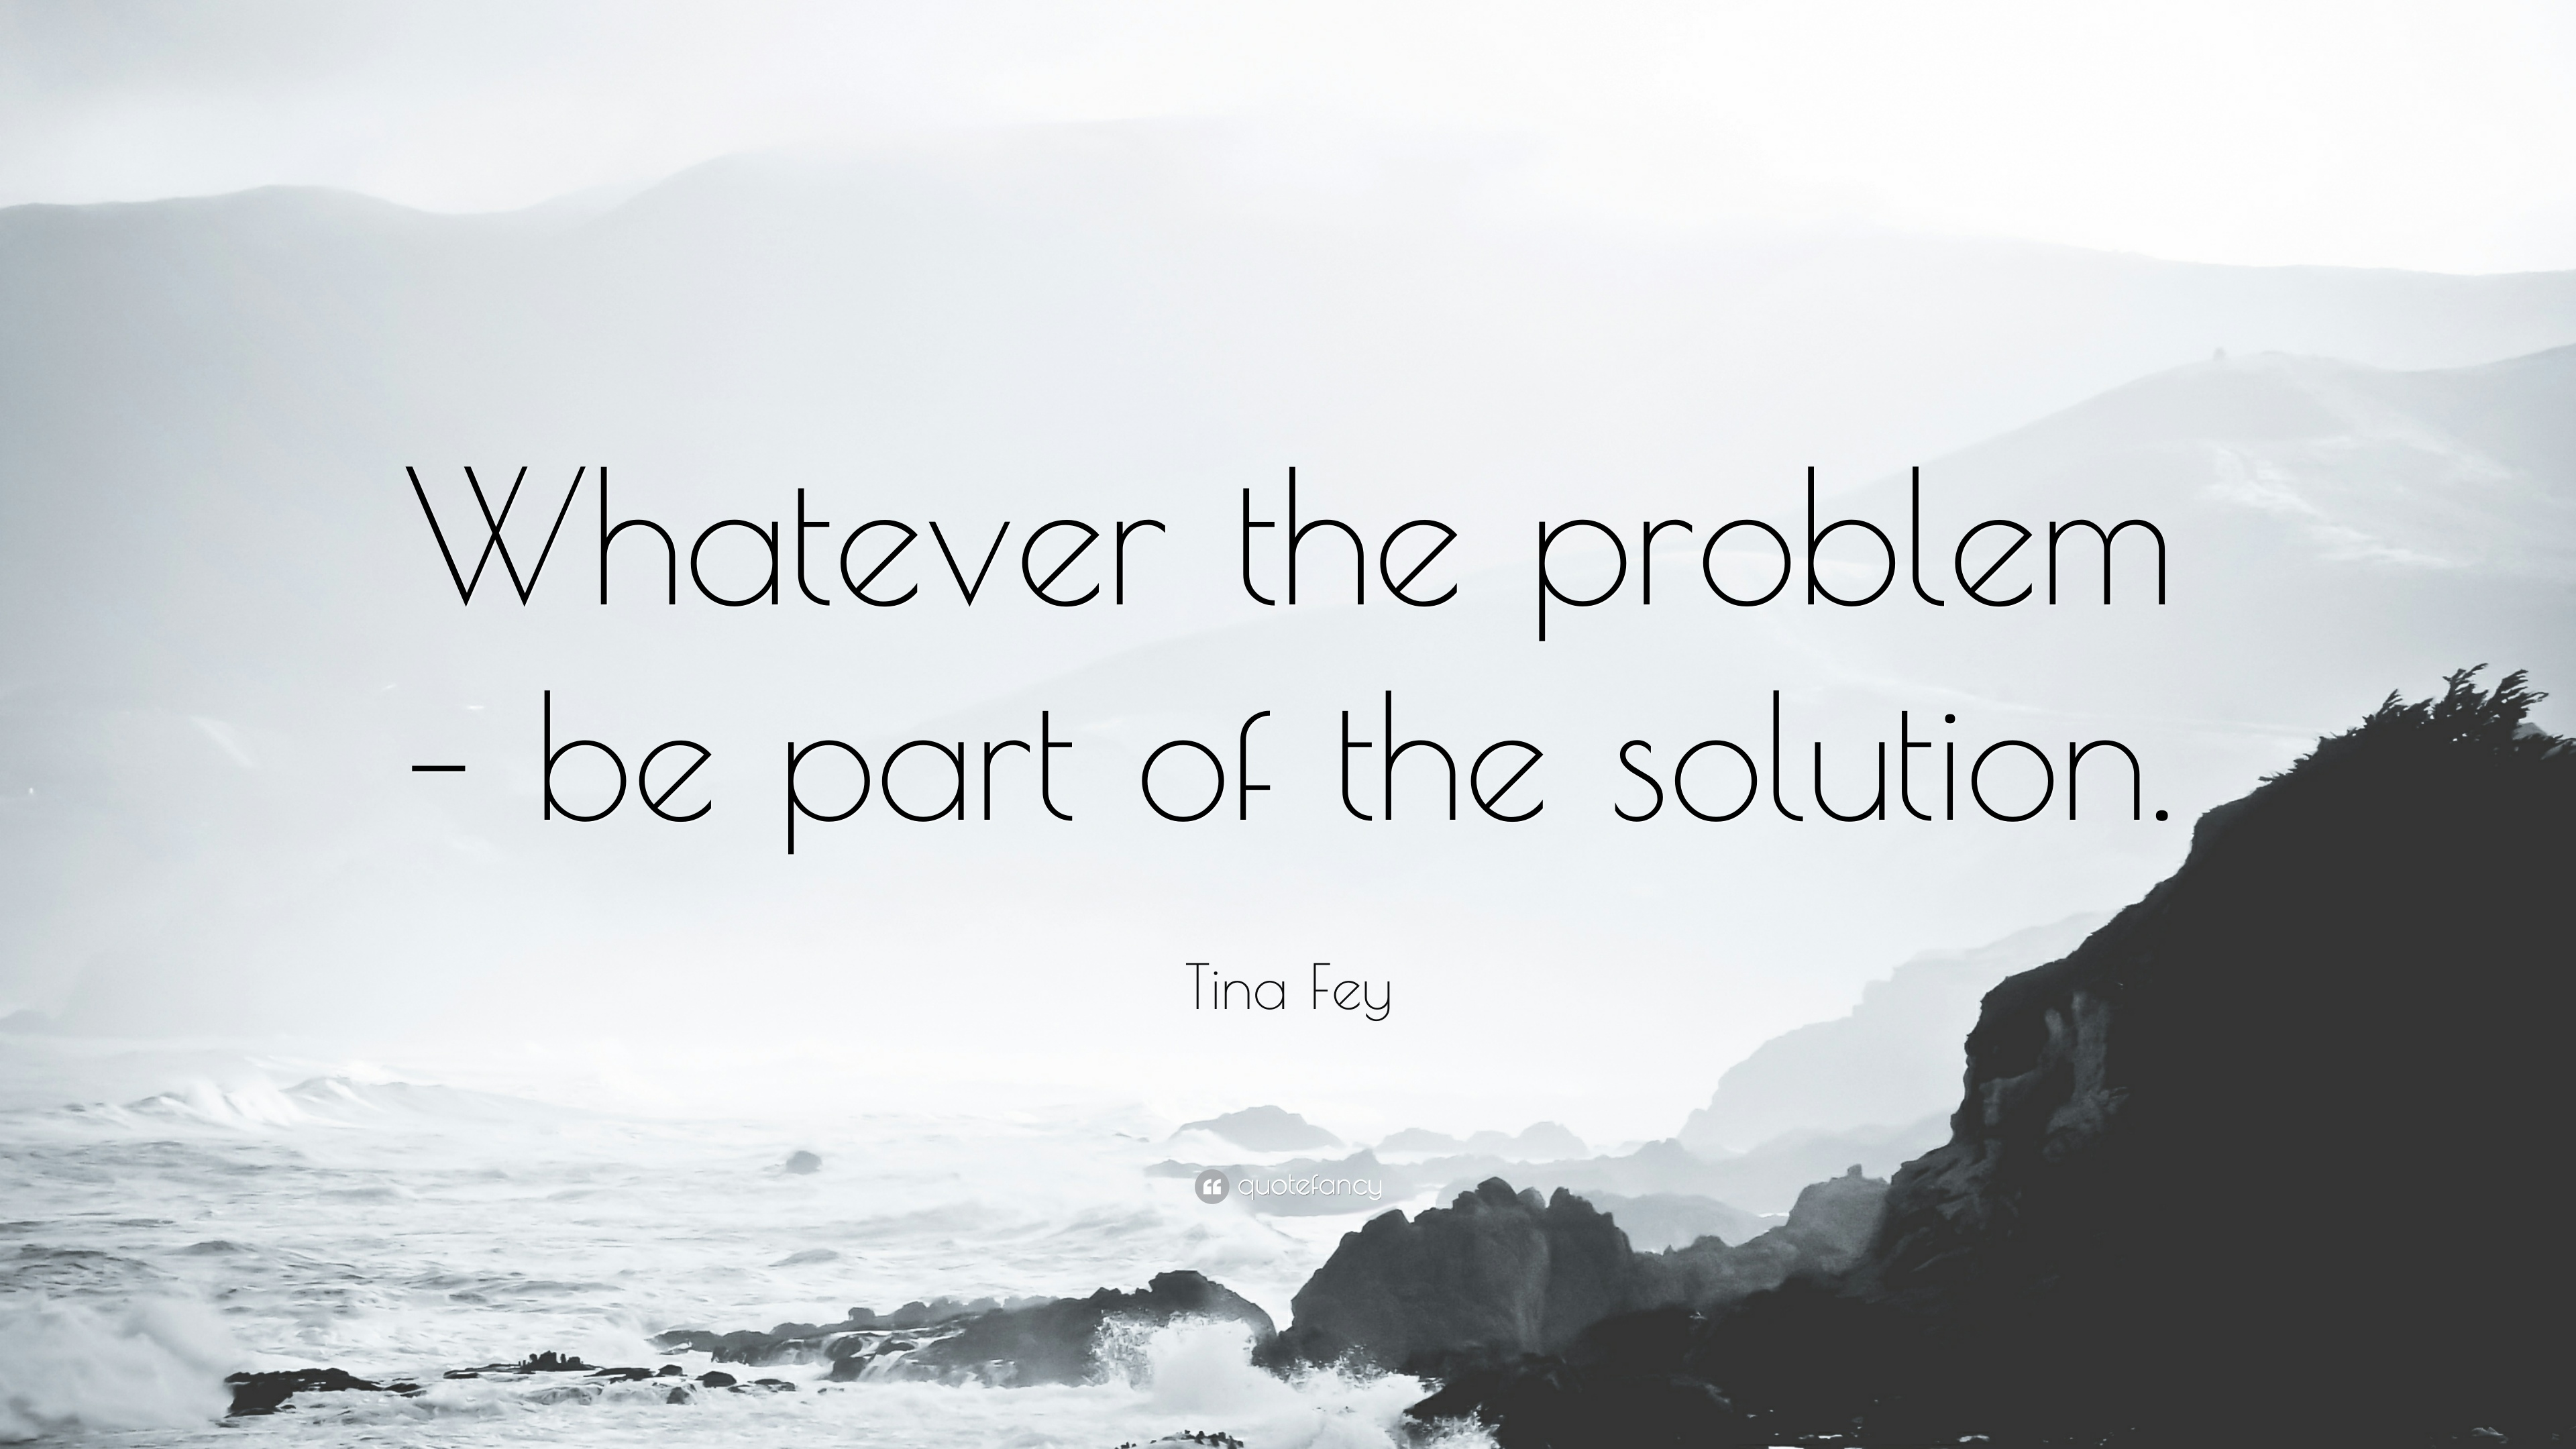 tina fey quote whatever the problem be part of the solution 12 wallpapers quotefancy. Black Bedroom Furniture Sets. Home Design Ideas